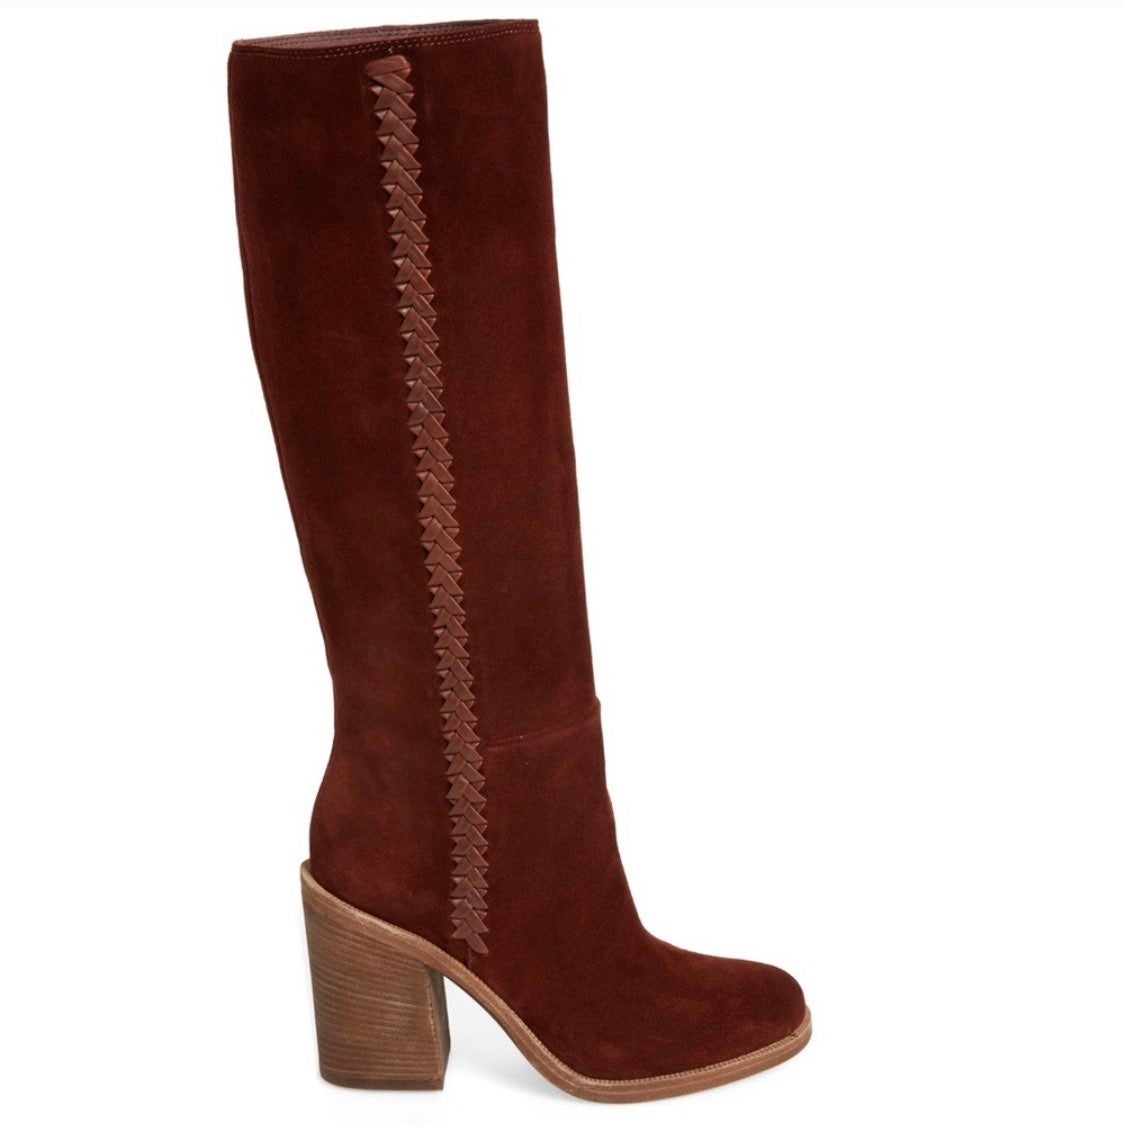 Ugg Tall Suede Boots - FIRM